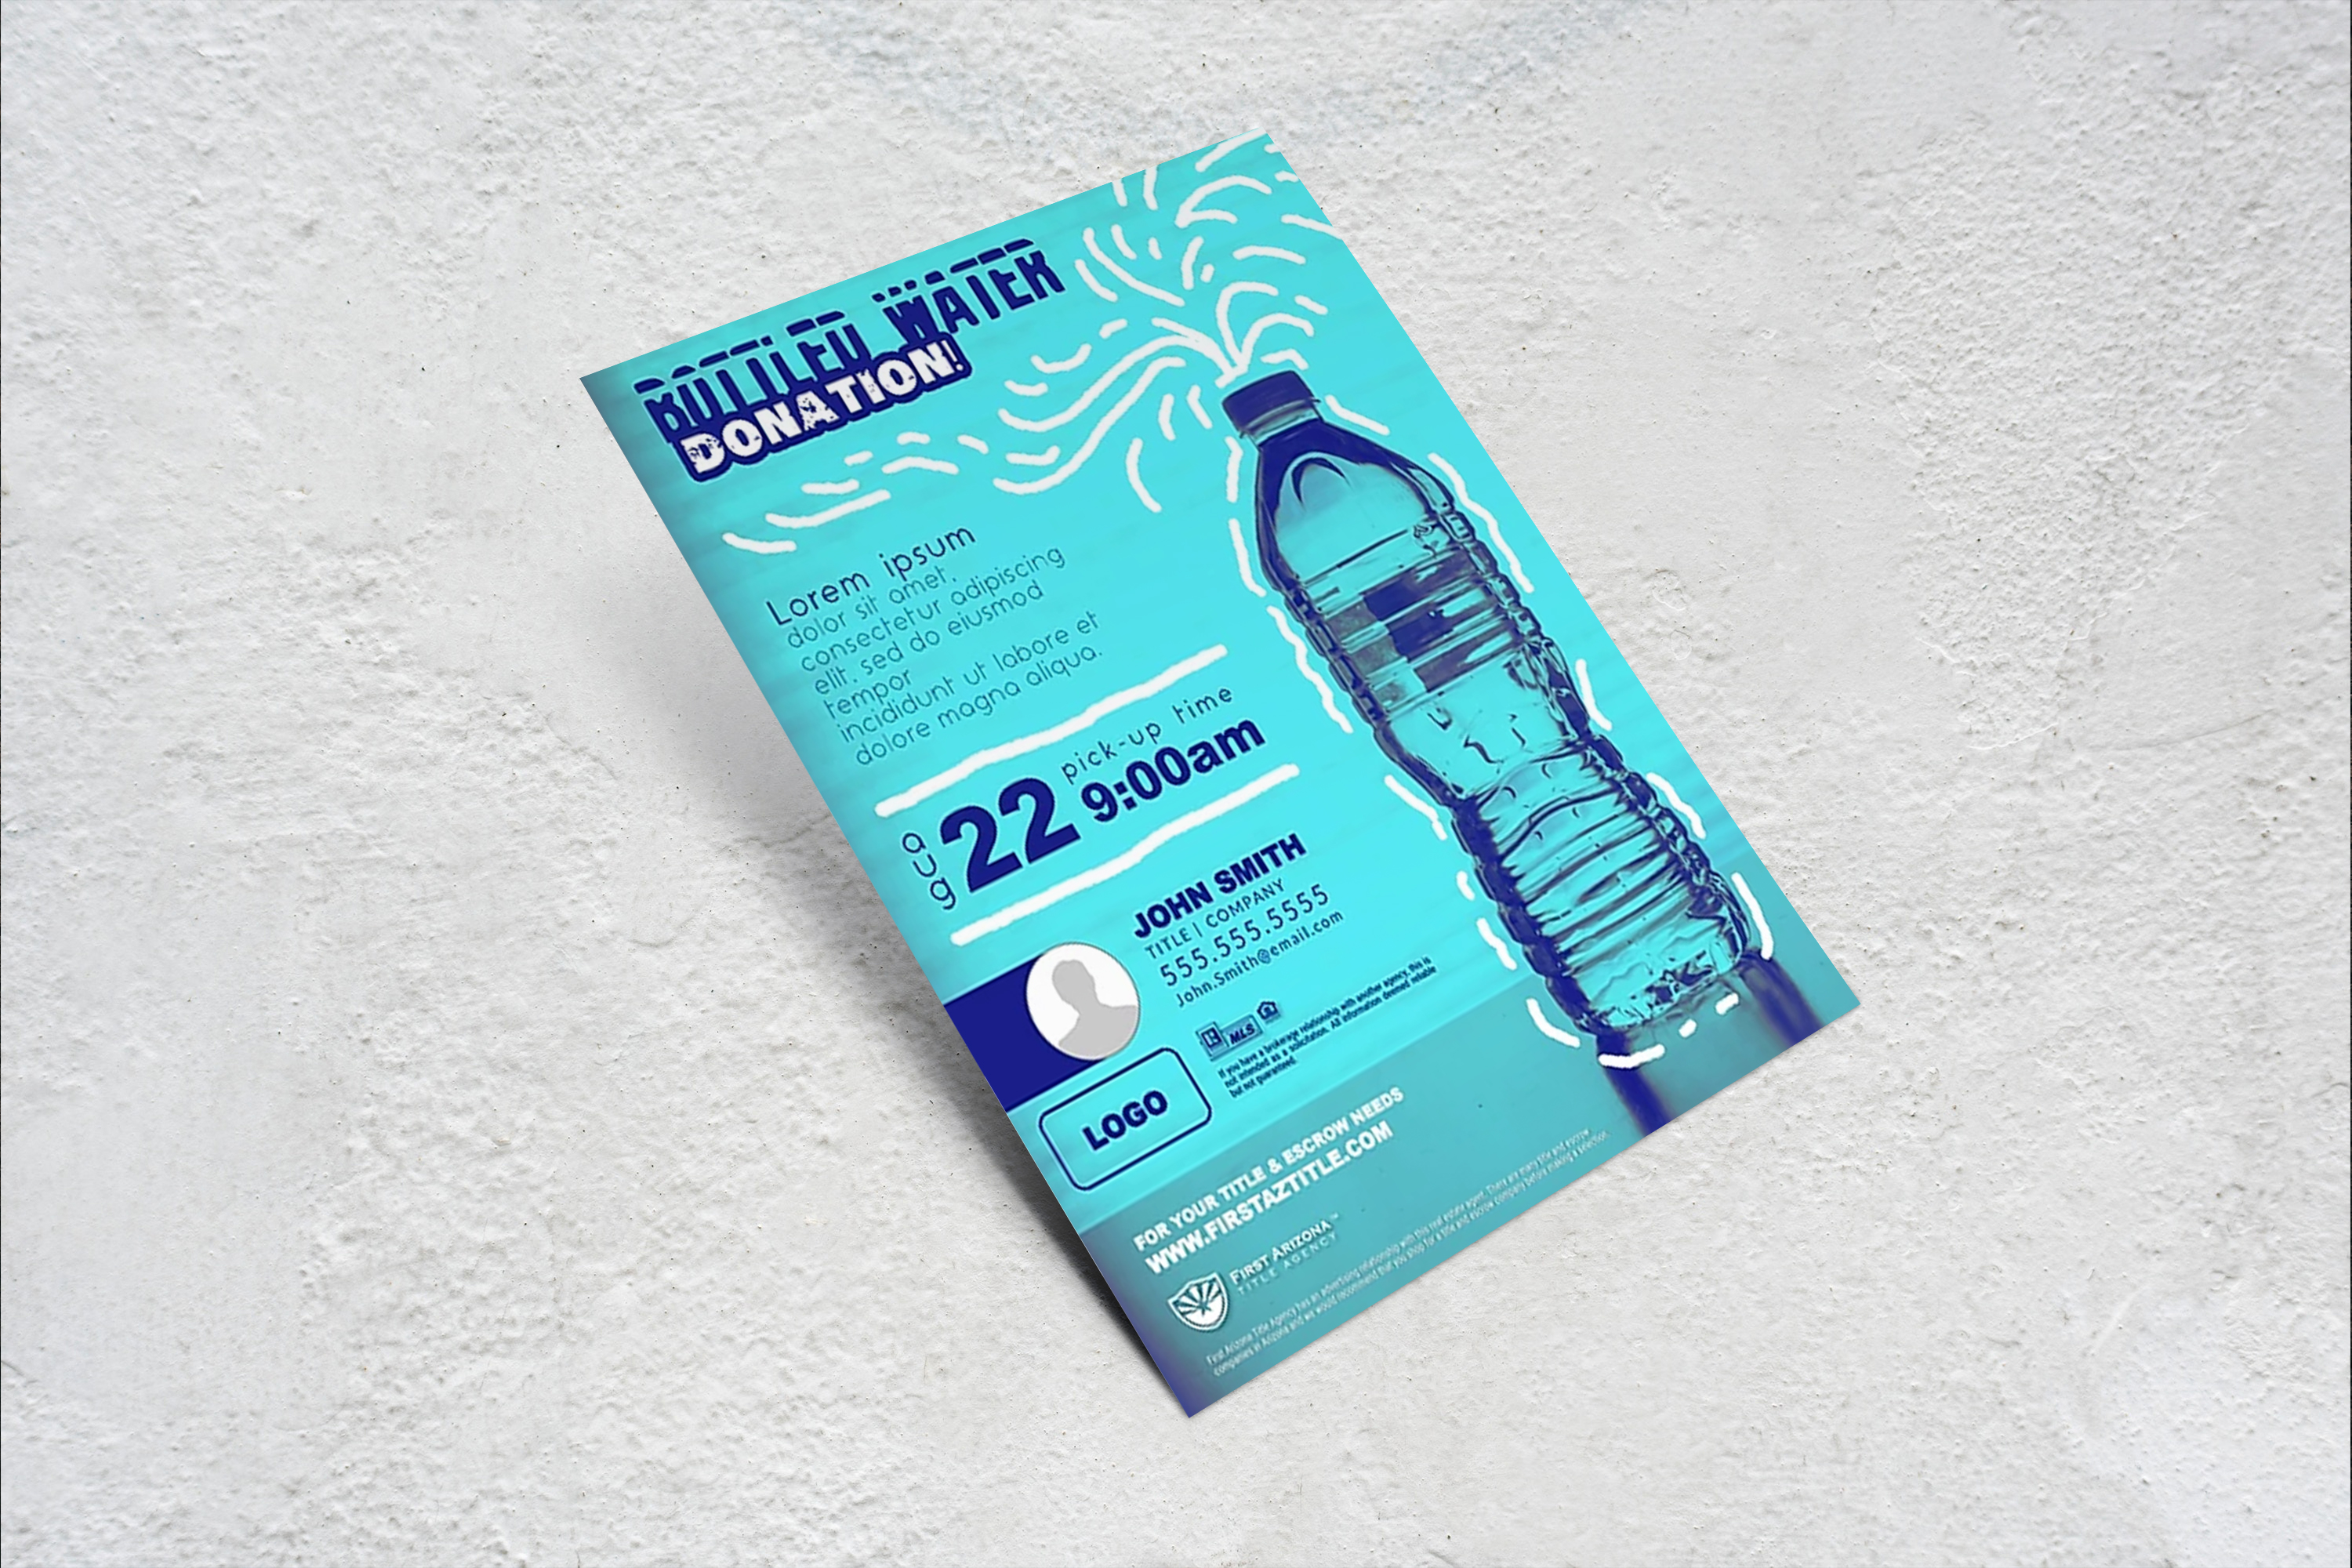 Bottled Water Donation Flyer